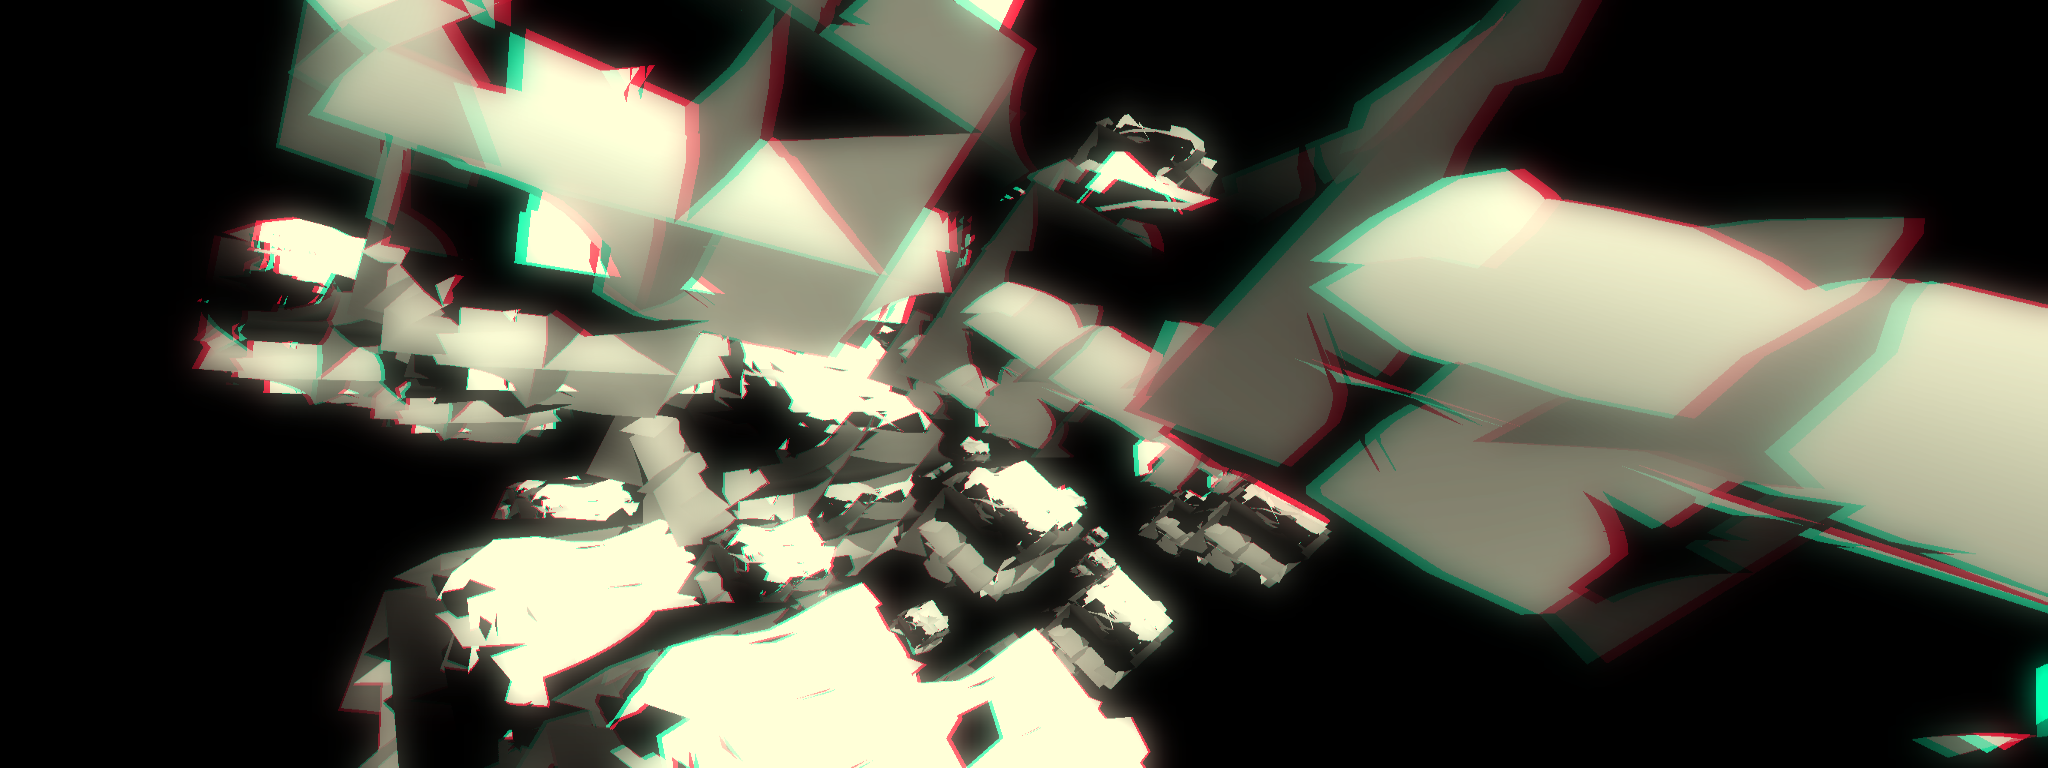 AnaglificoDmtr_-_syphon1_2014-09-15_at_23.44.15.png